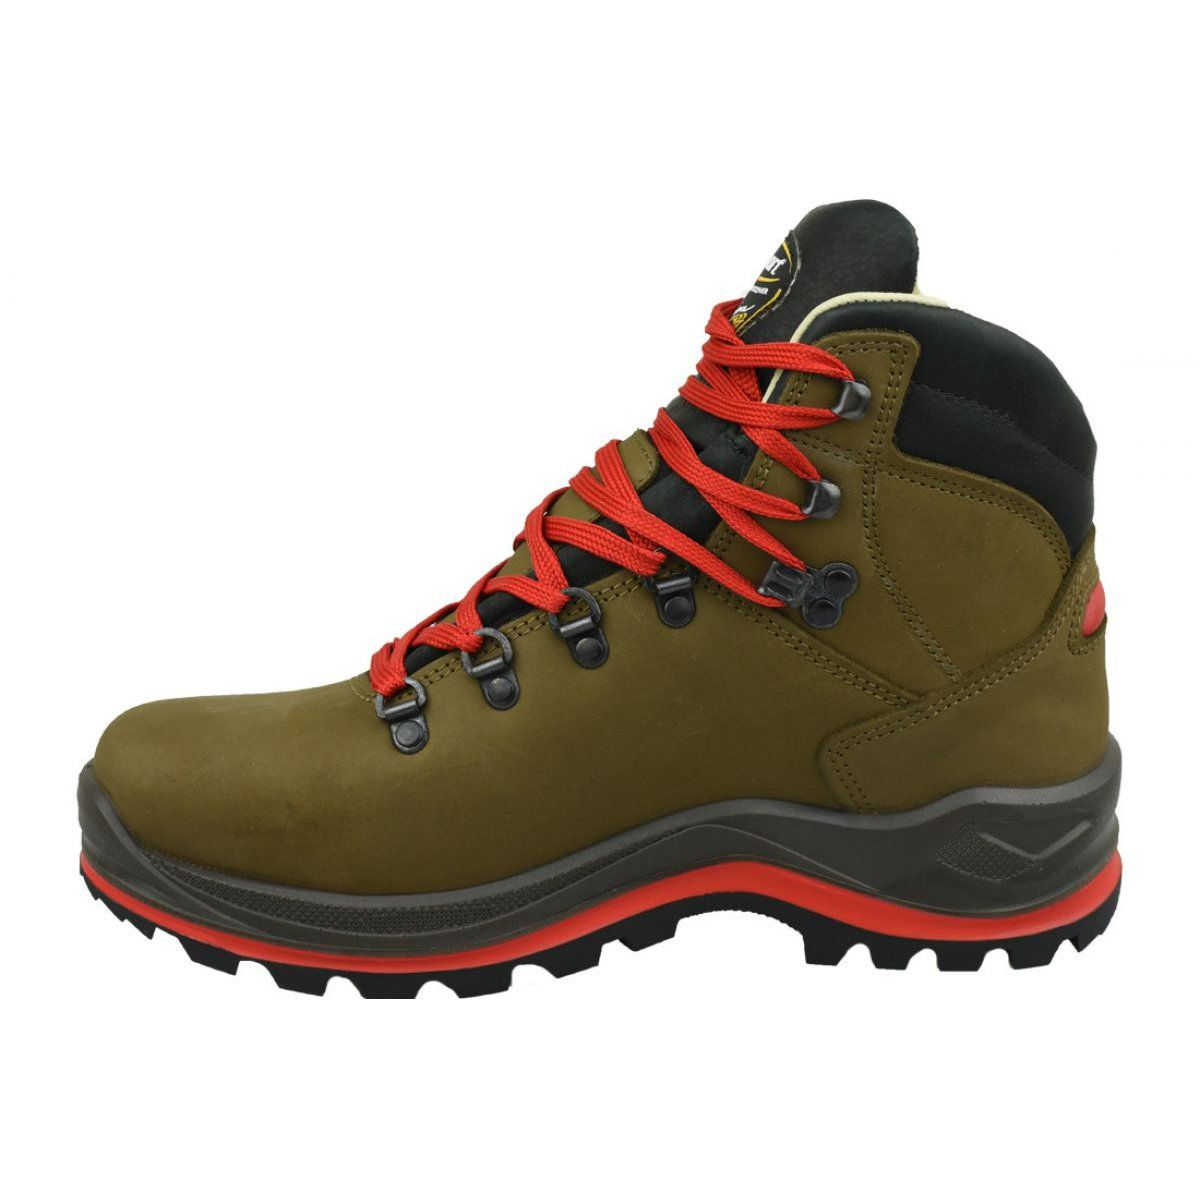 Grisport Marrone M 13701n32g Shoes Brown Comfortable Hiking Boots Nubuck Leather Shoes